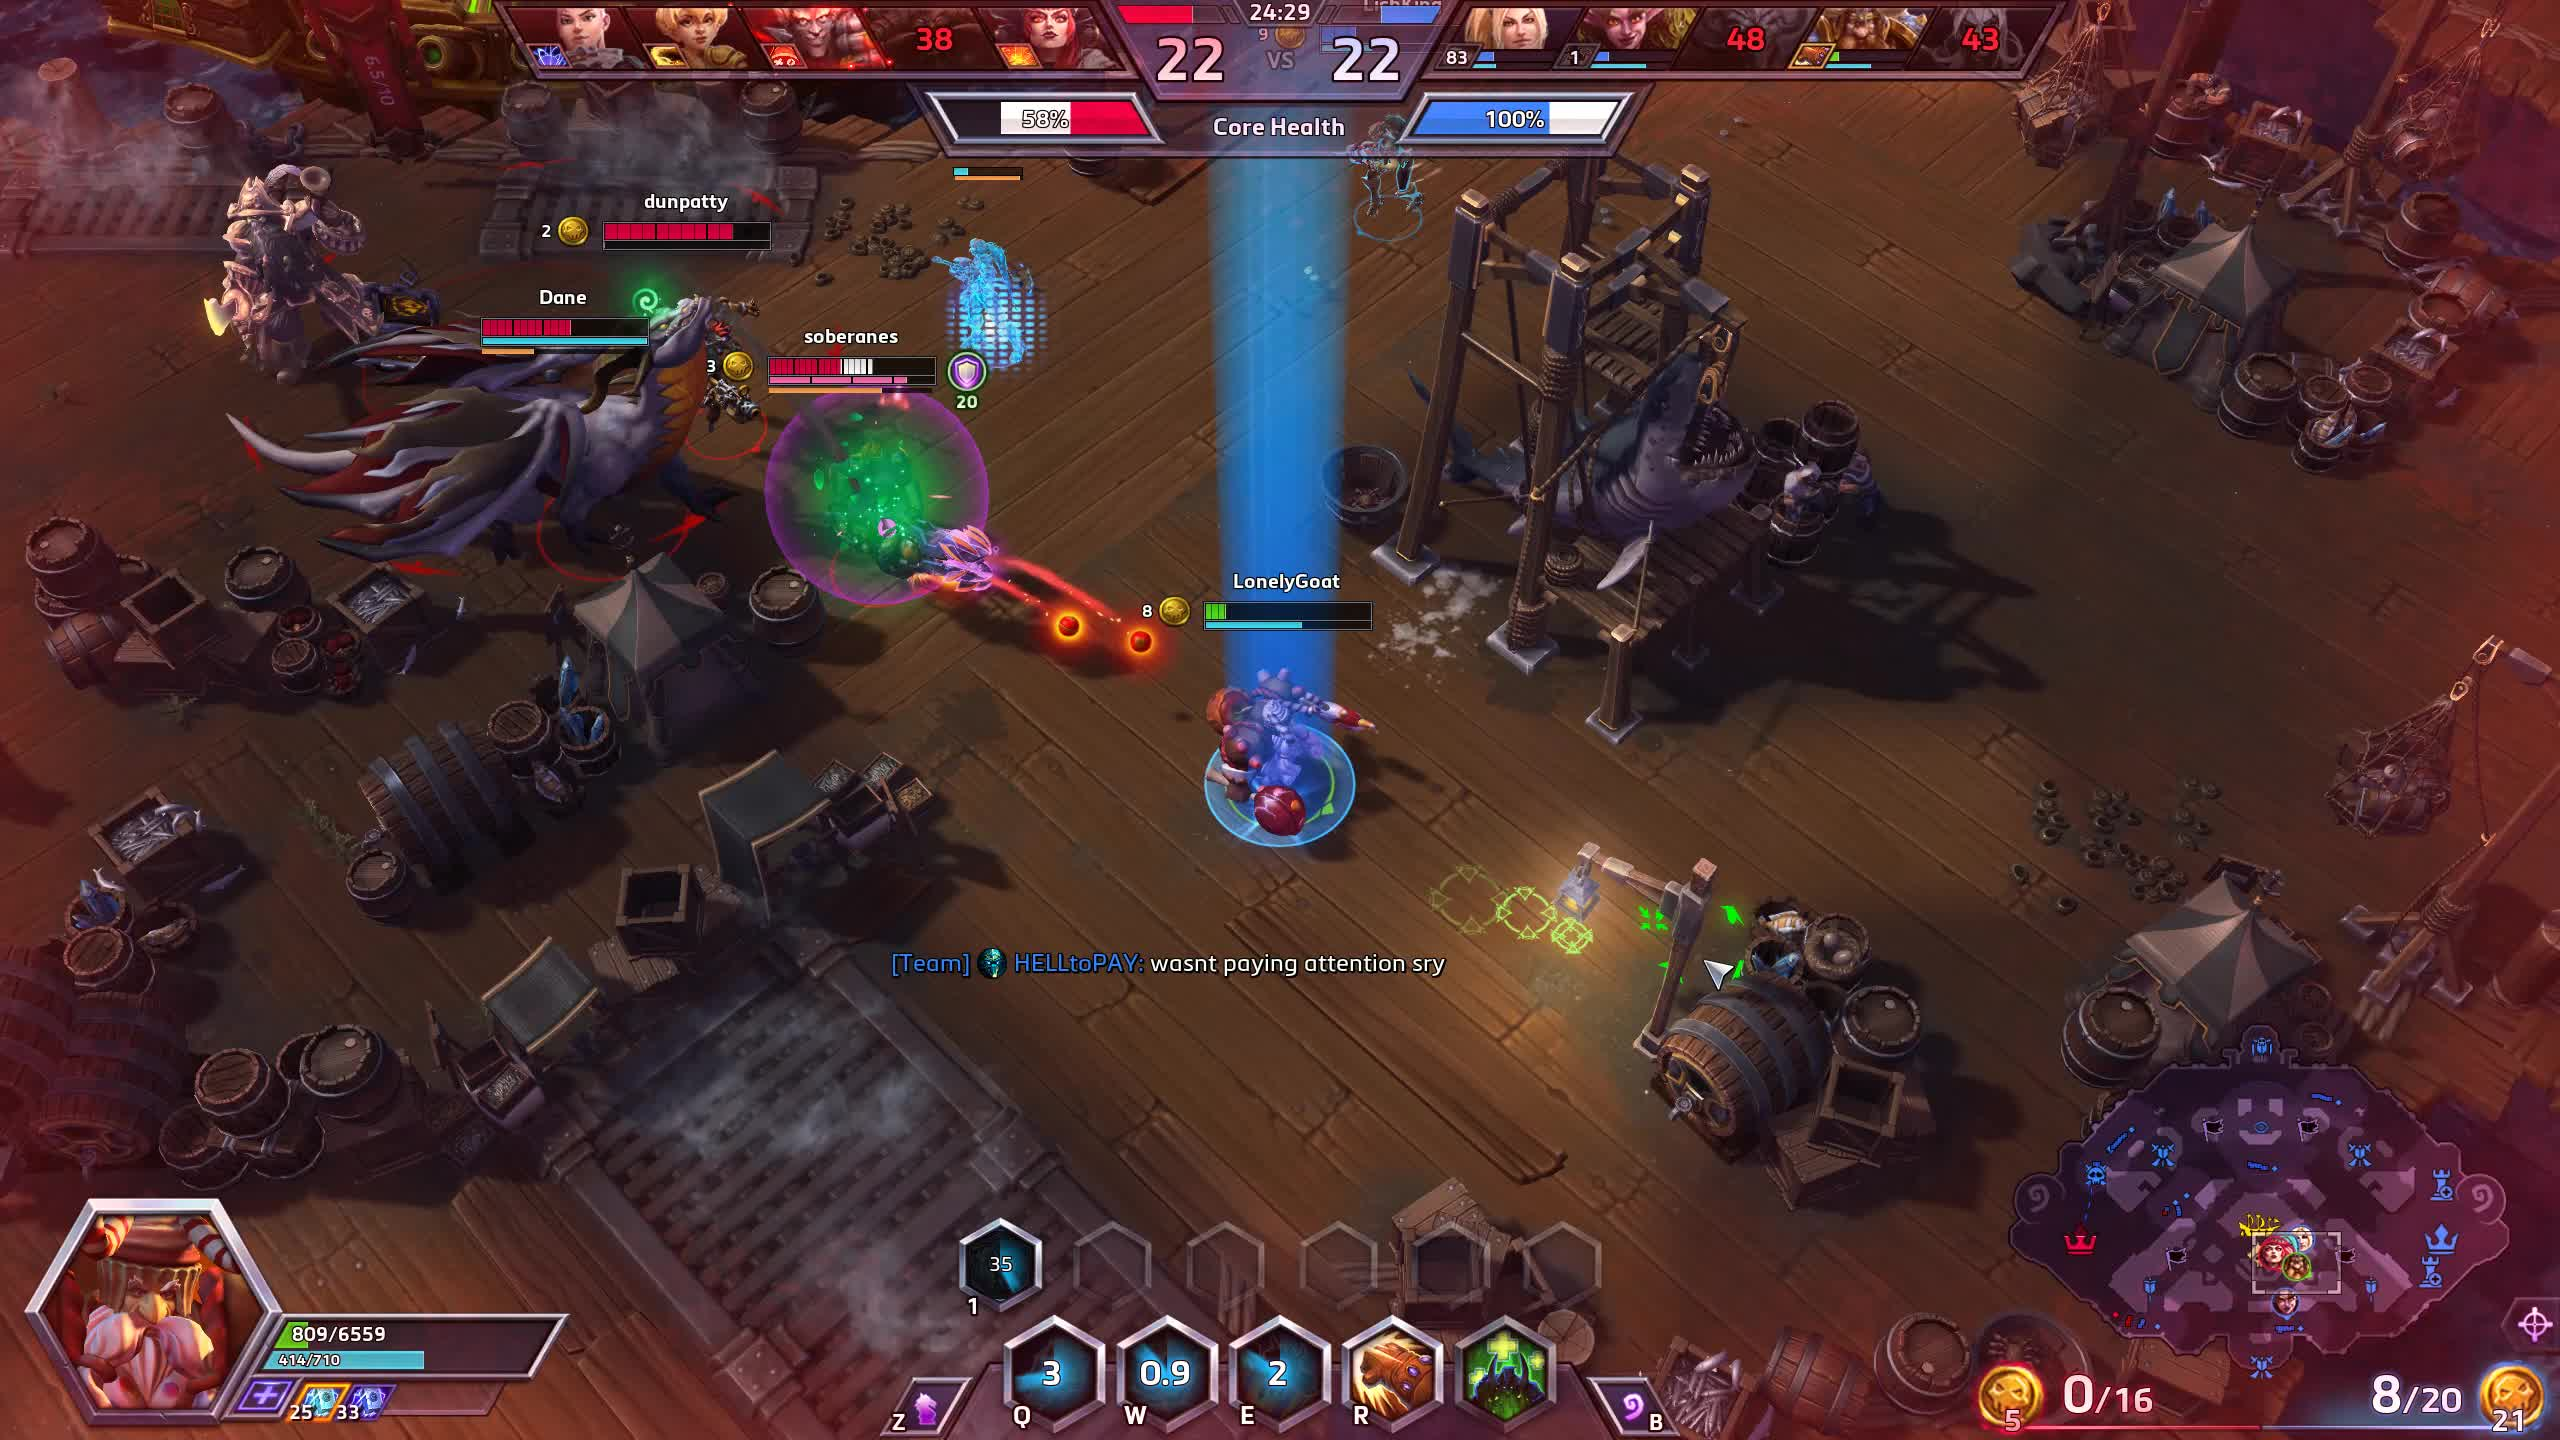 heroesofthestorm, vlc-record-2019-03-09-12h43m13s-Heroes of the Storm 2019.02.17 - 18.22.43.03.DVR.mp4- GIFs